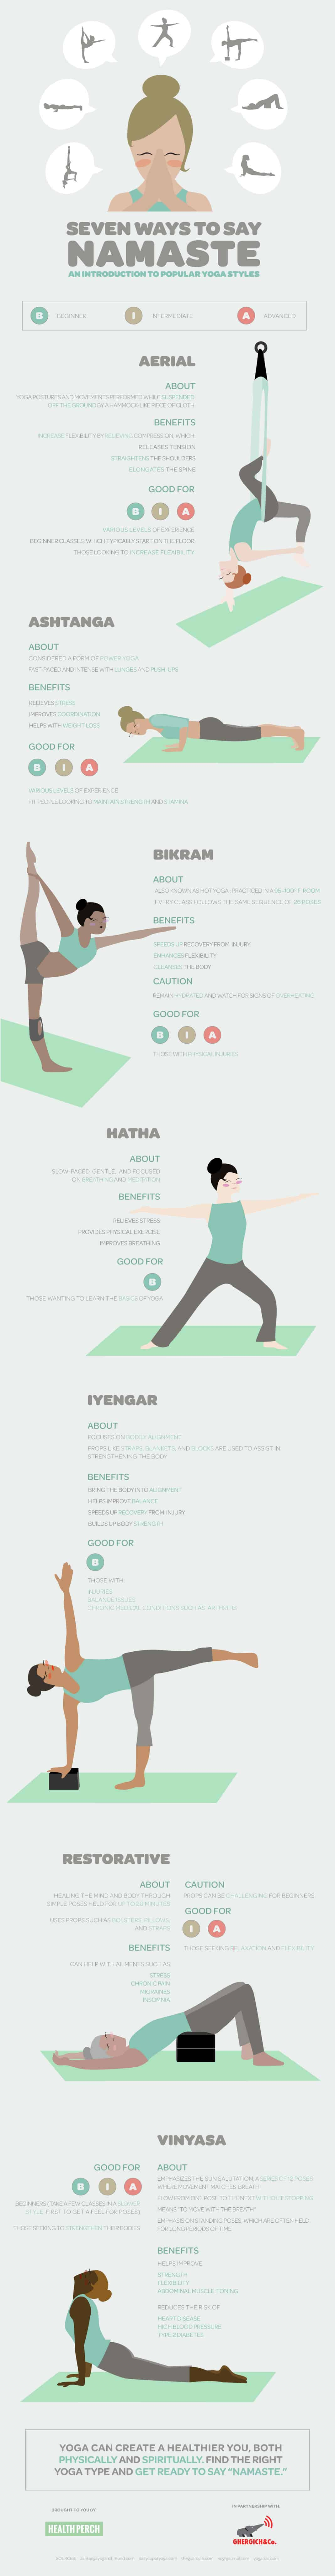 Seven Ways To Say Namaste - An Introduction To Popular Yoga Styles